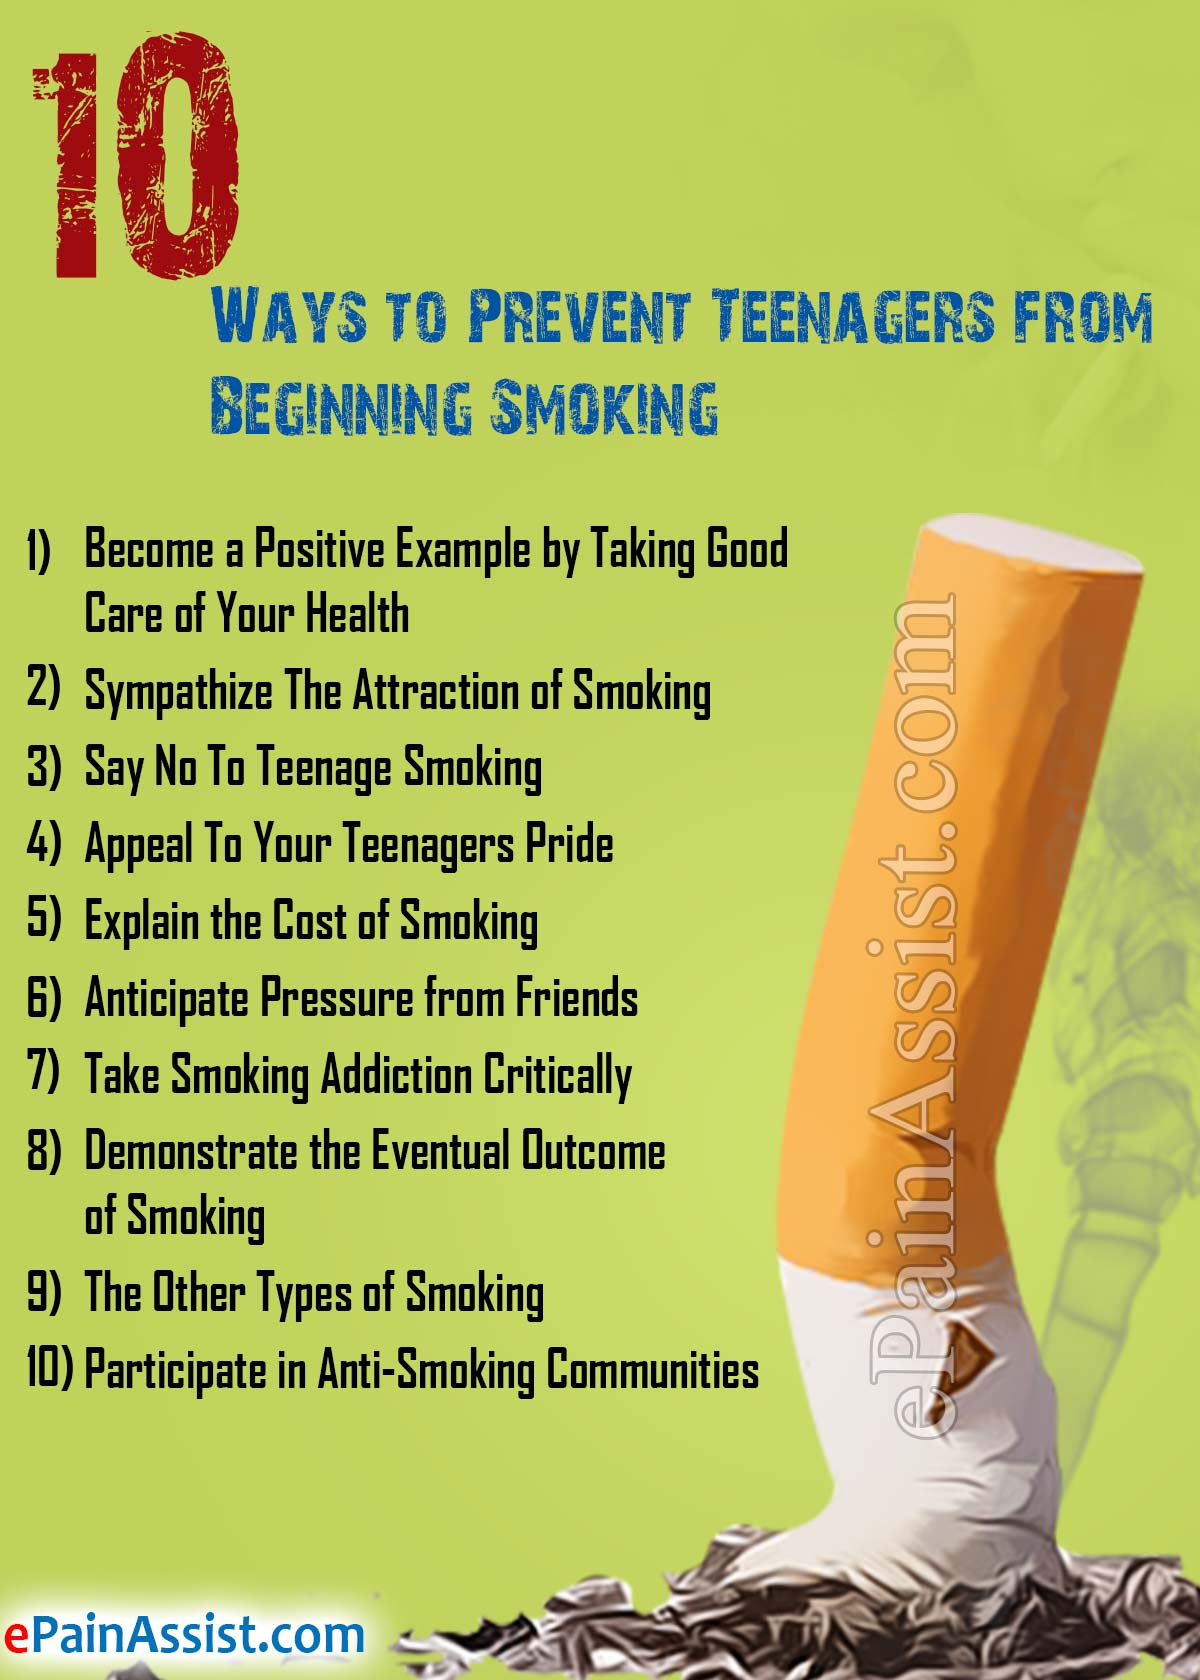 10 Ways to Prevent Teenagers from Beginning Smoking